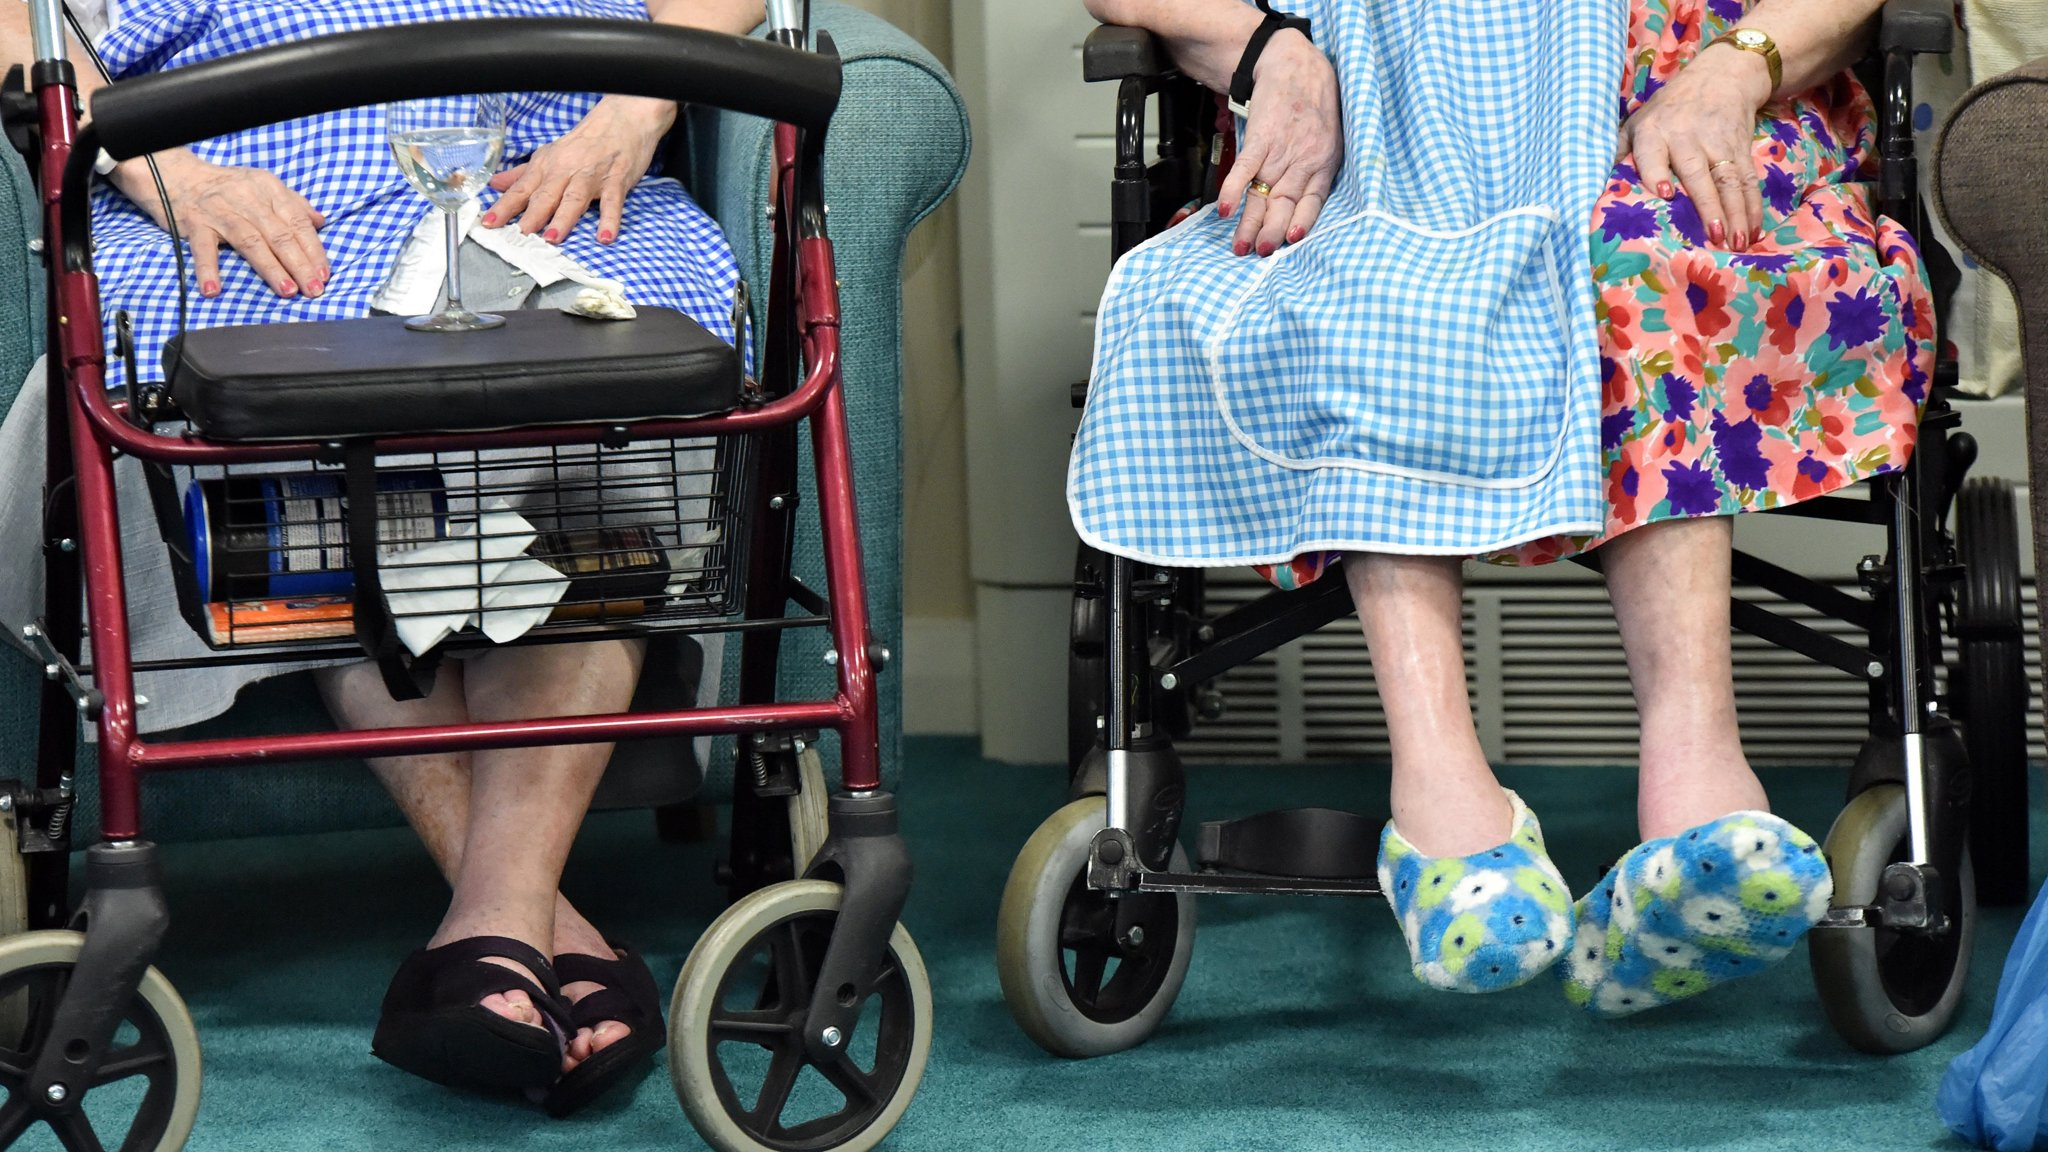 May to allow council tax rise to pay for elderly care | Financial Times